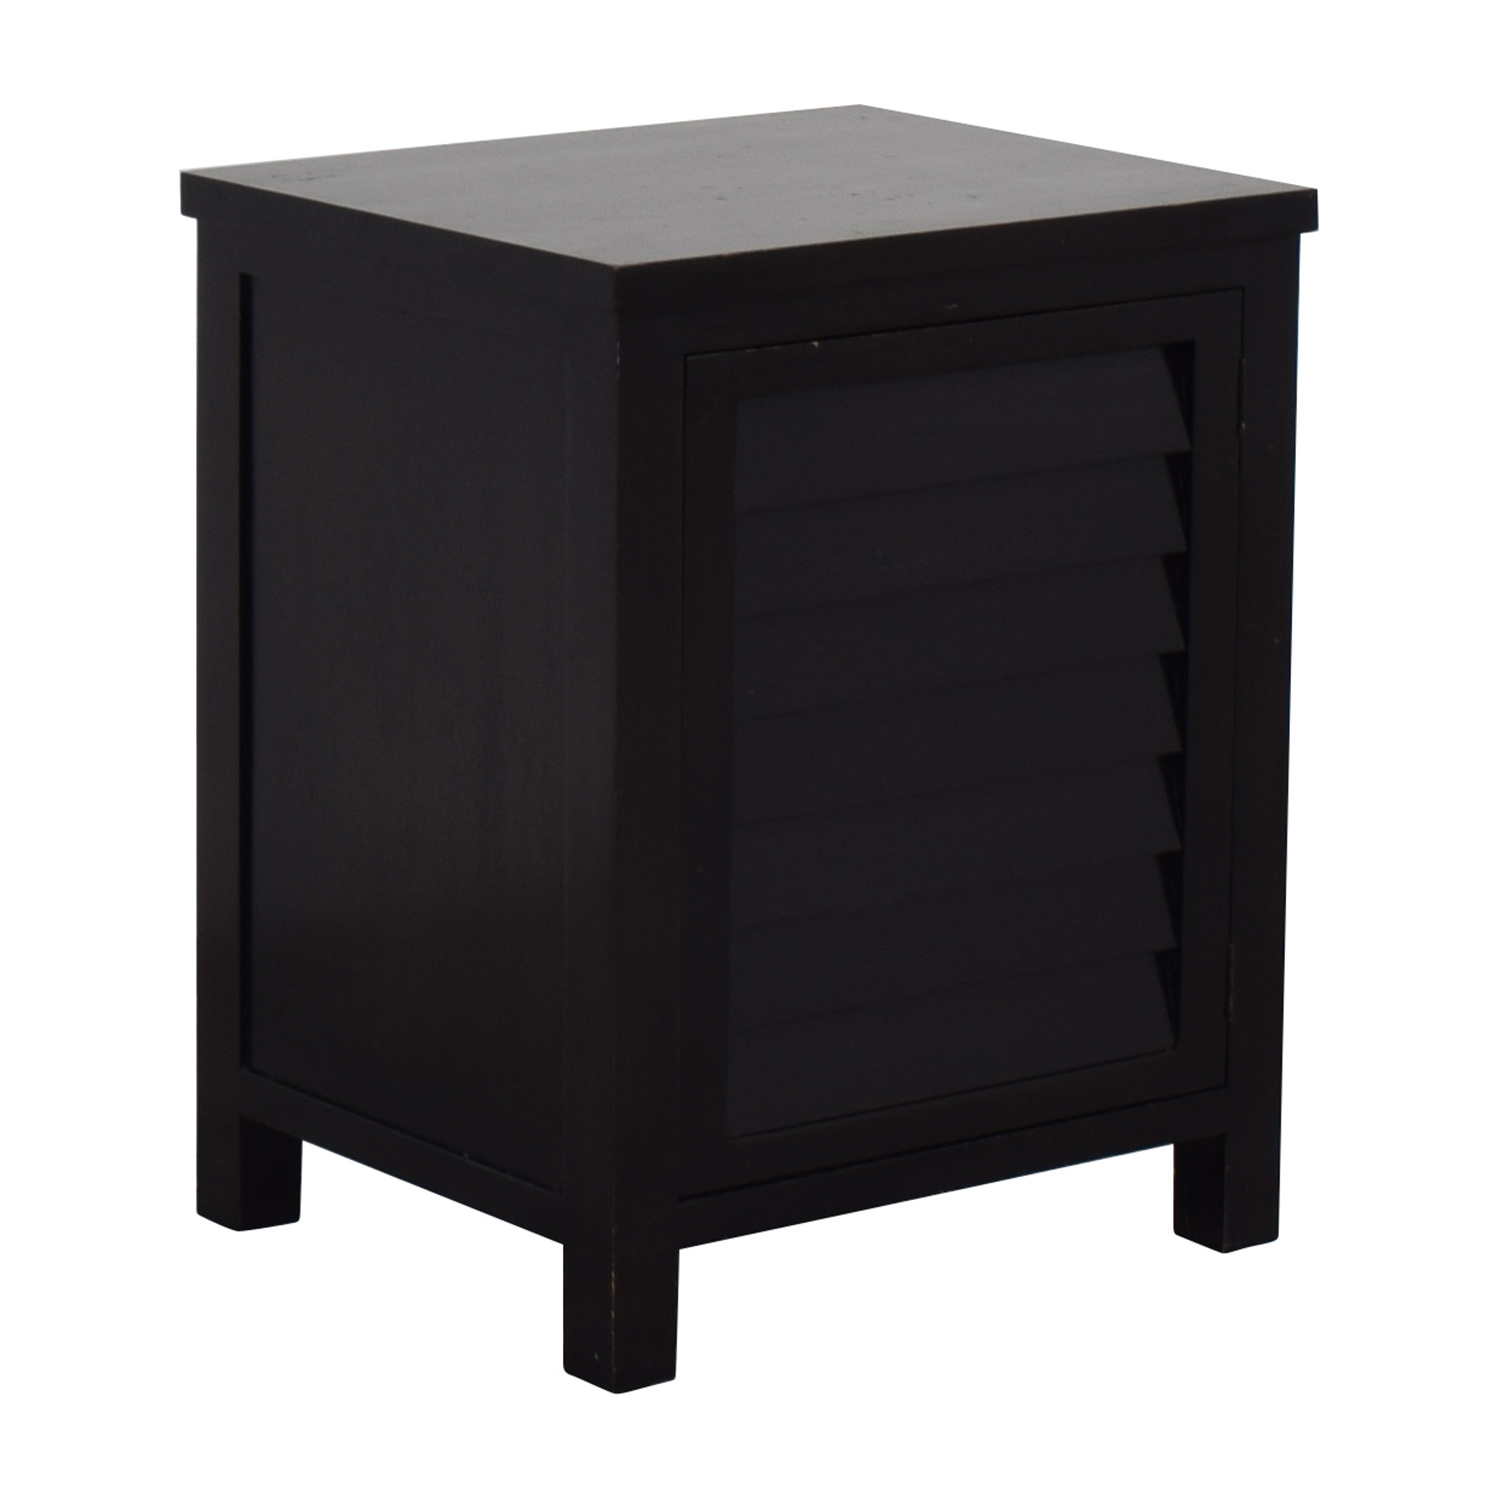 Crate Barrel Table: Crate & Barrel Crate & Barrel Side Table With